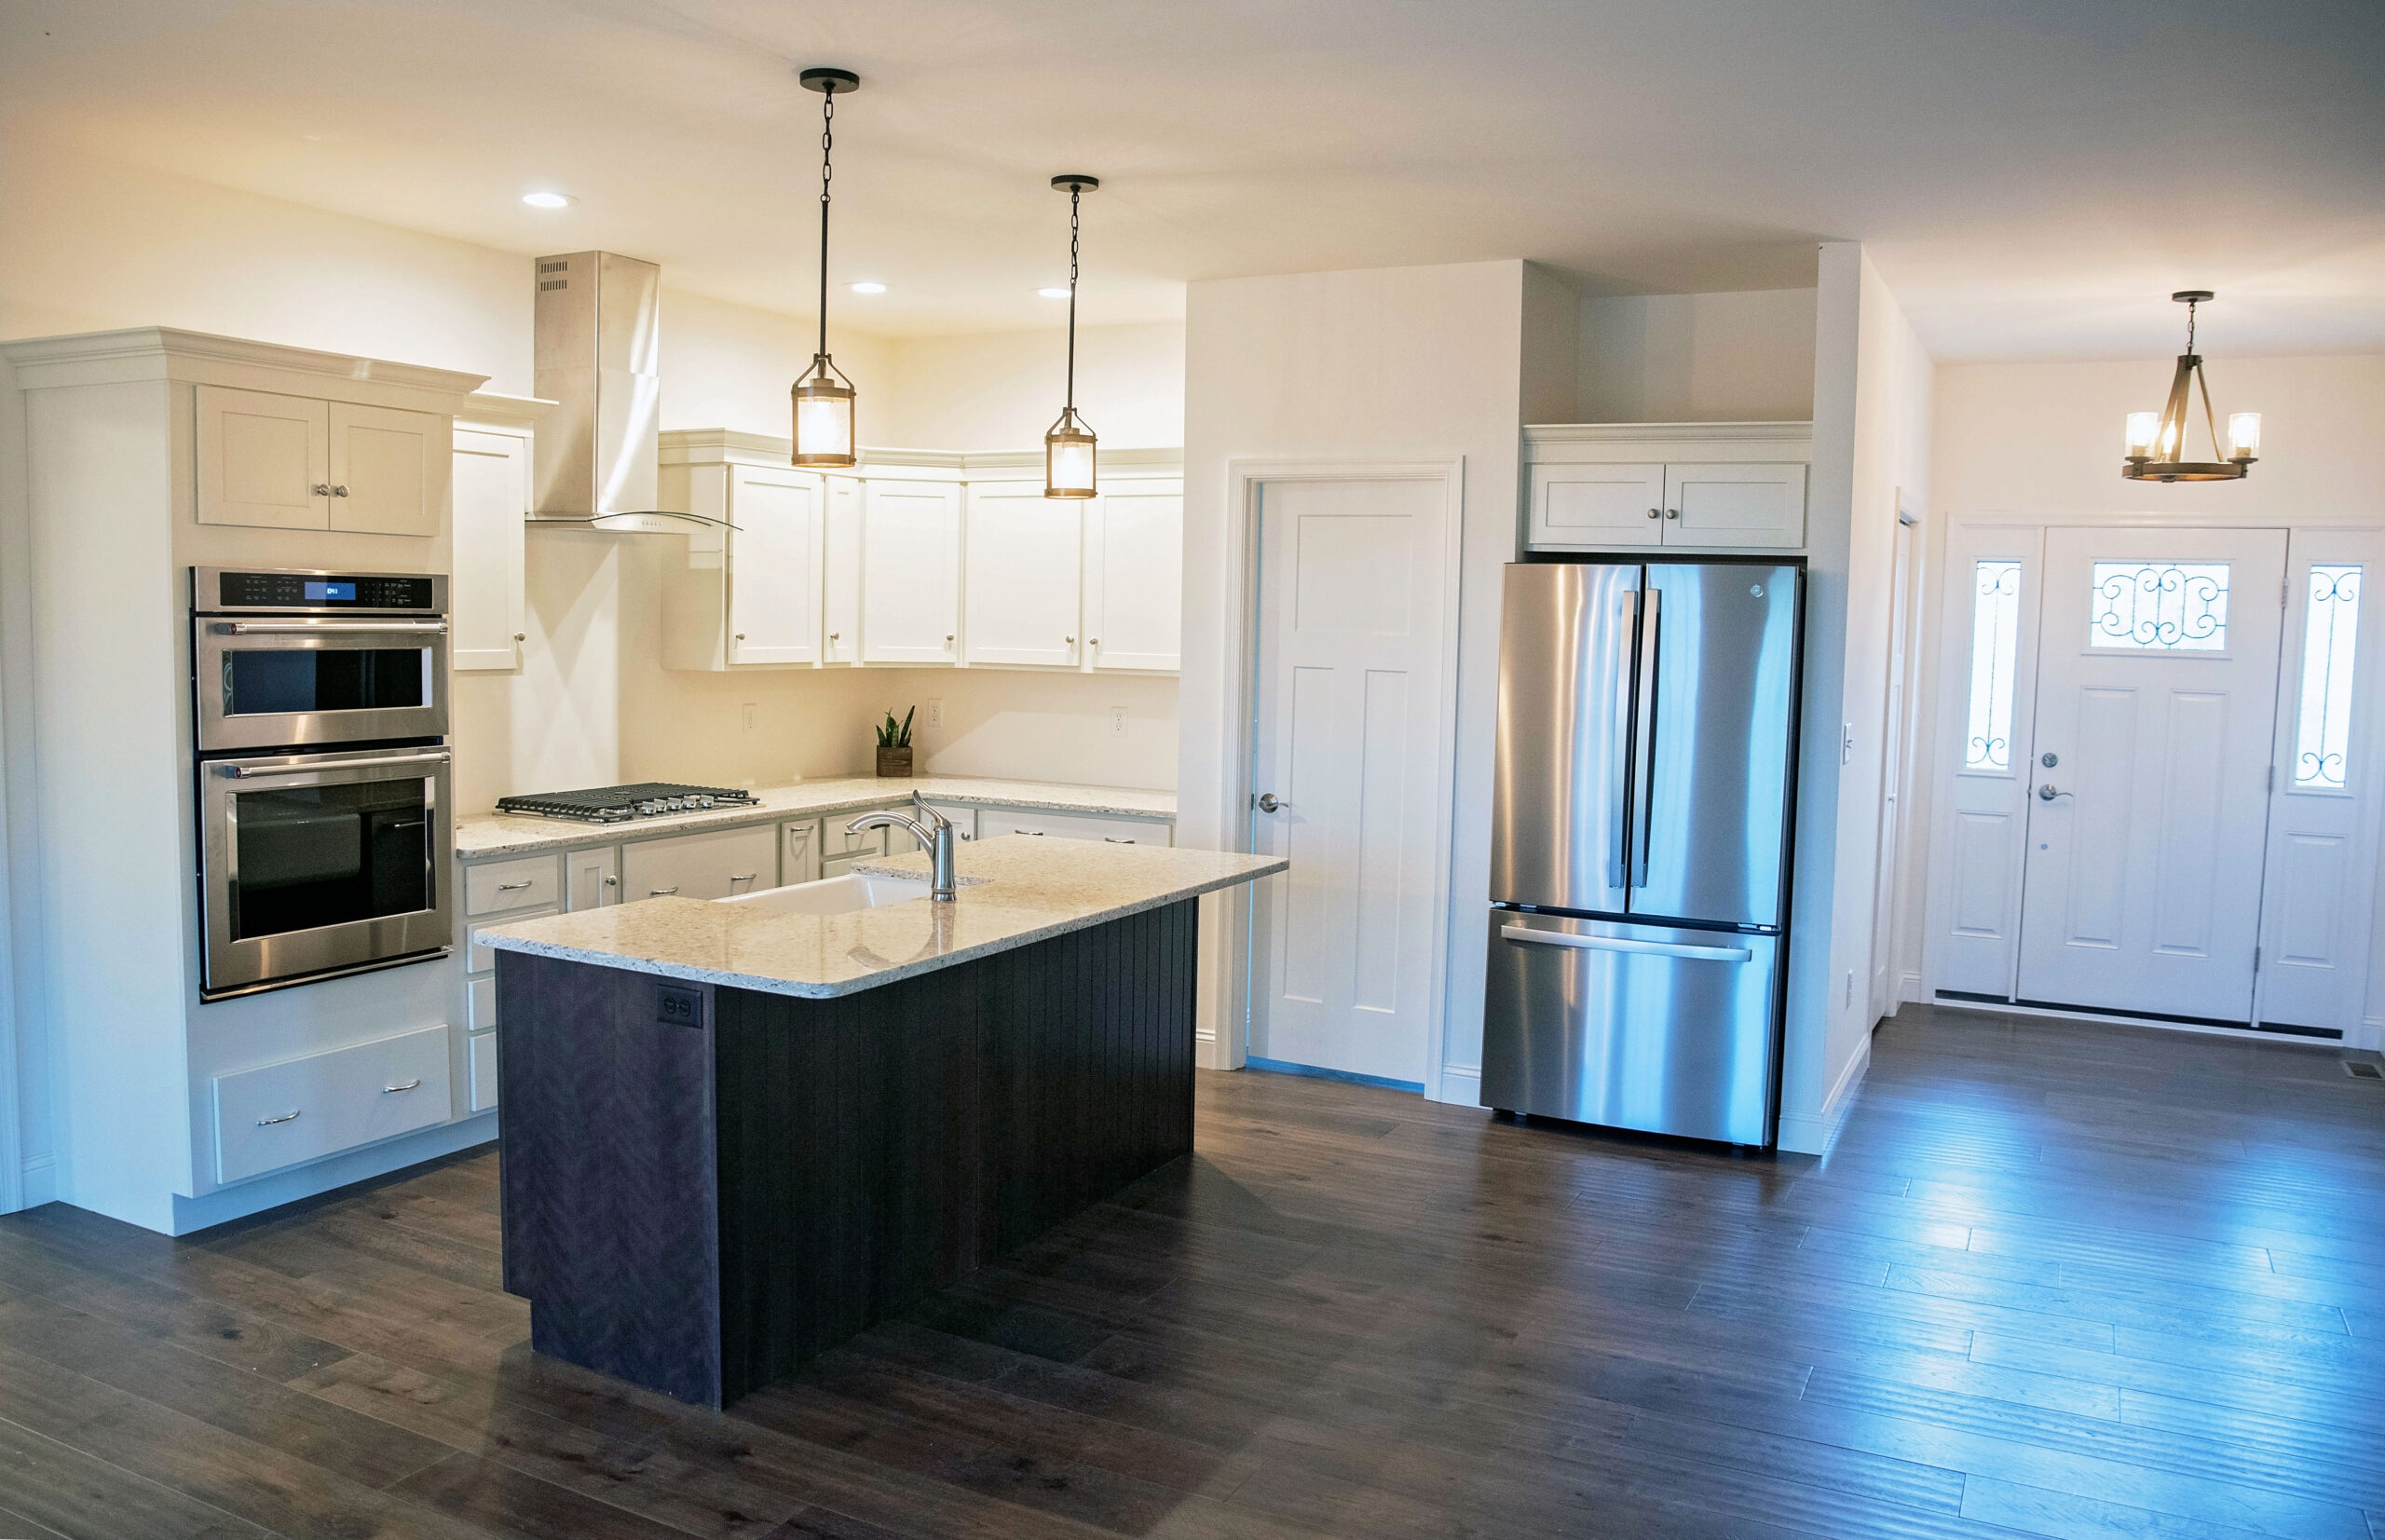 The 2-toned kitchen with white painted perimeter cabinets and a cherry stained island with quartz countertops.